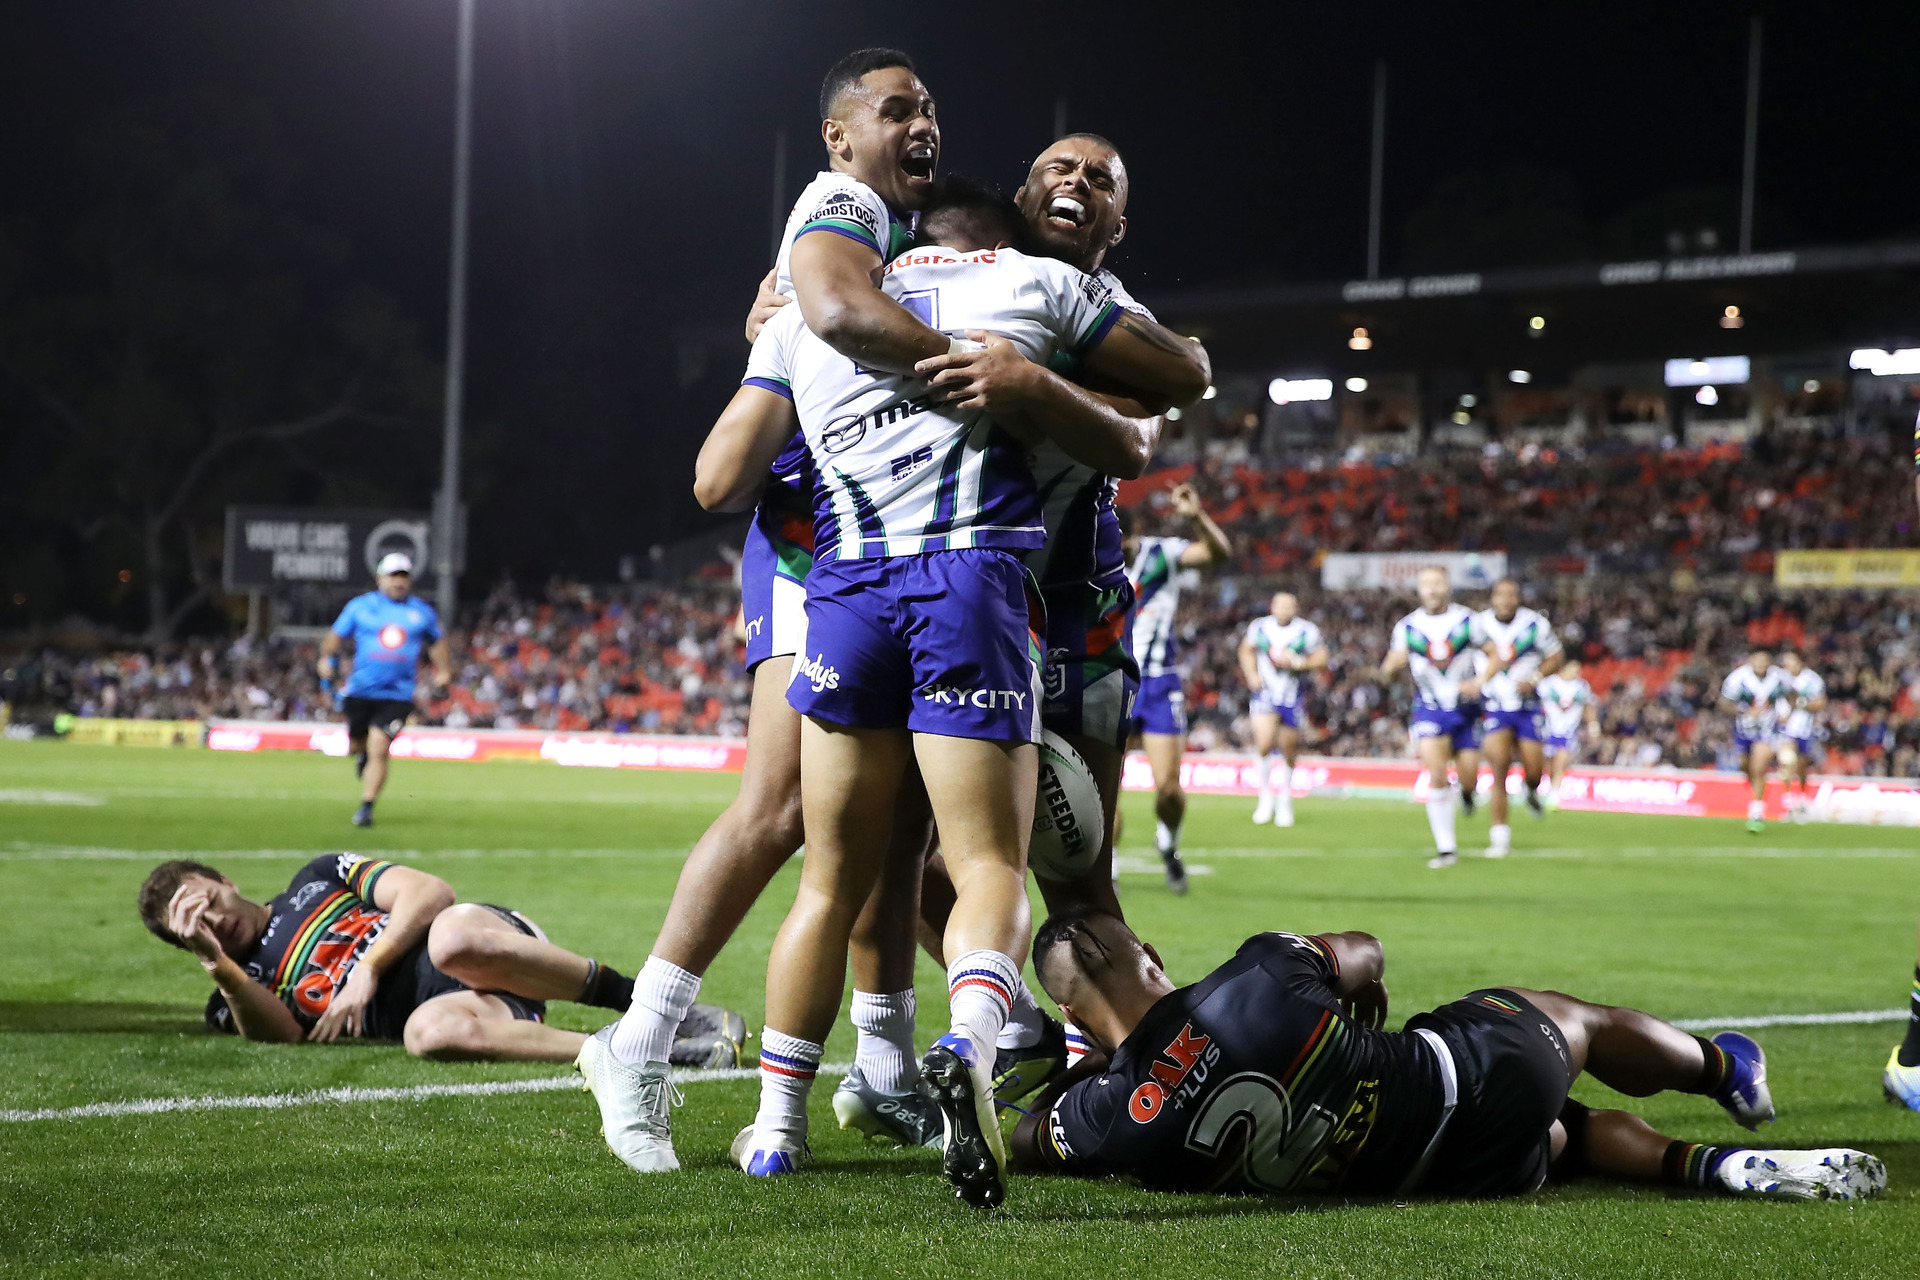 Rugby League: Revived New Zealand Warriors finally have platform to launch in 2019 NRL season